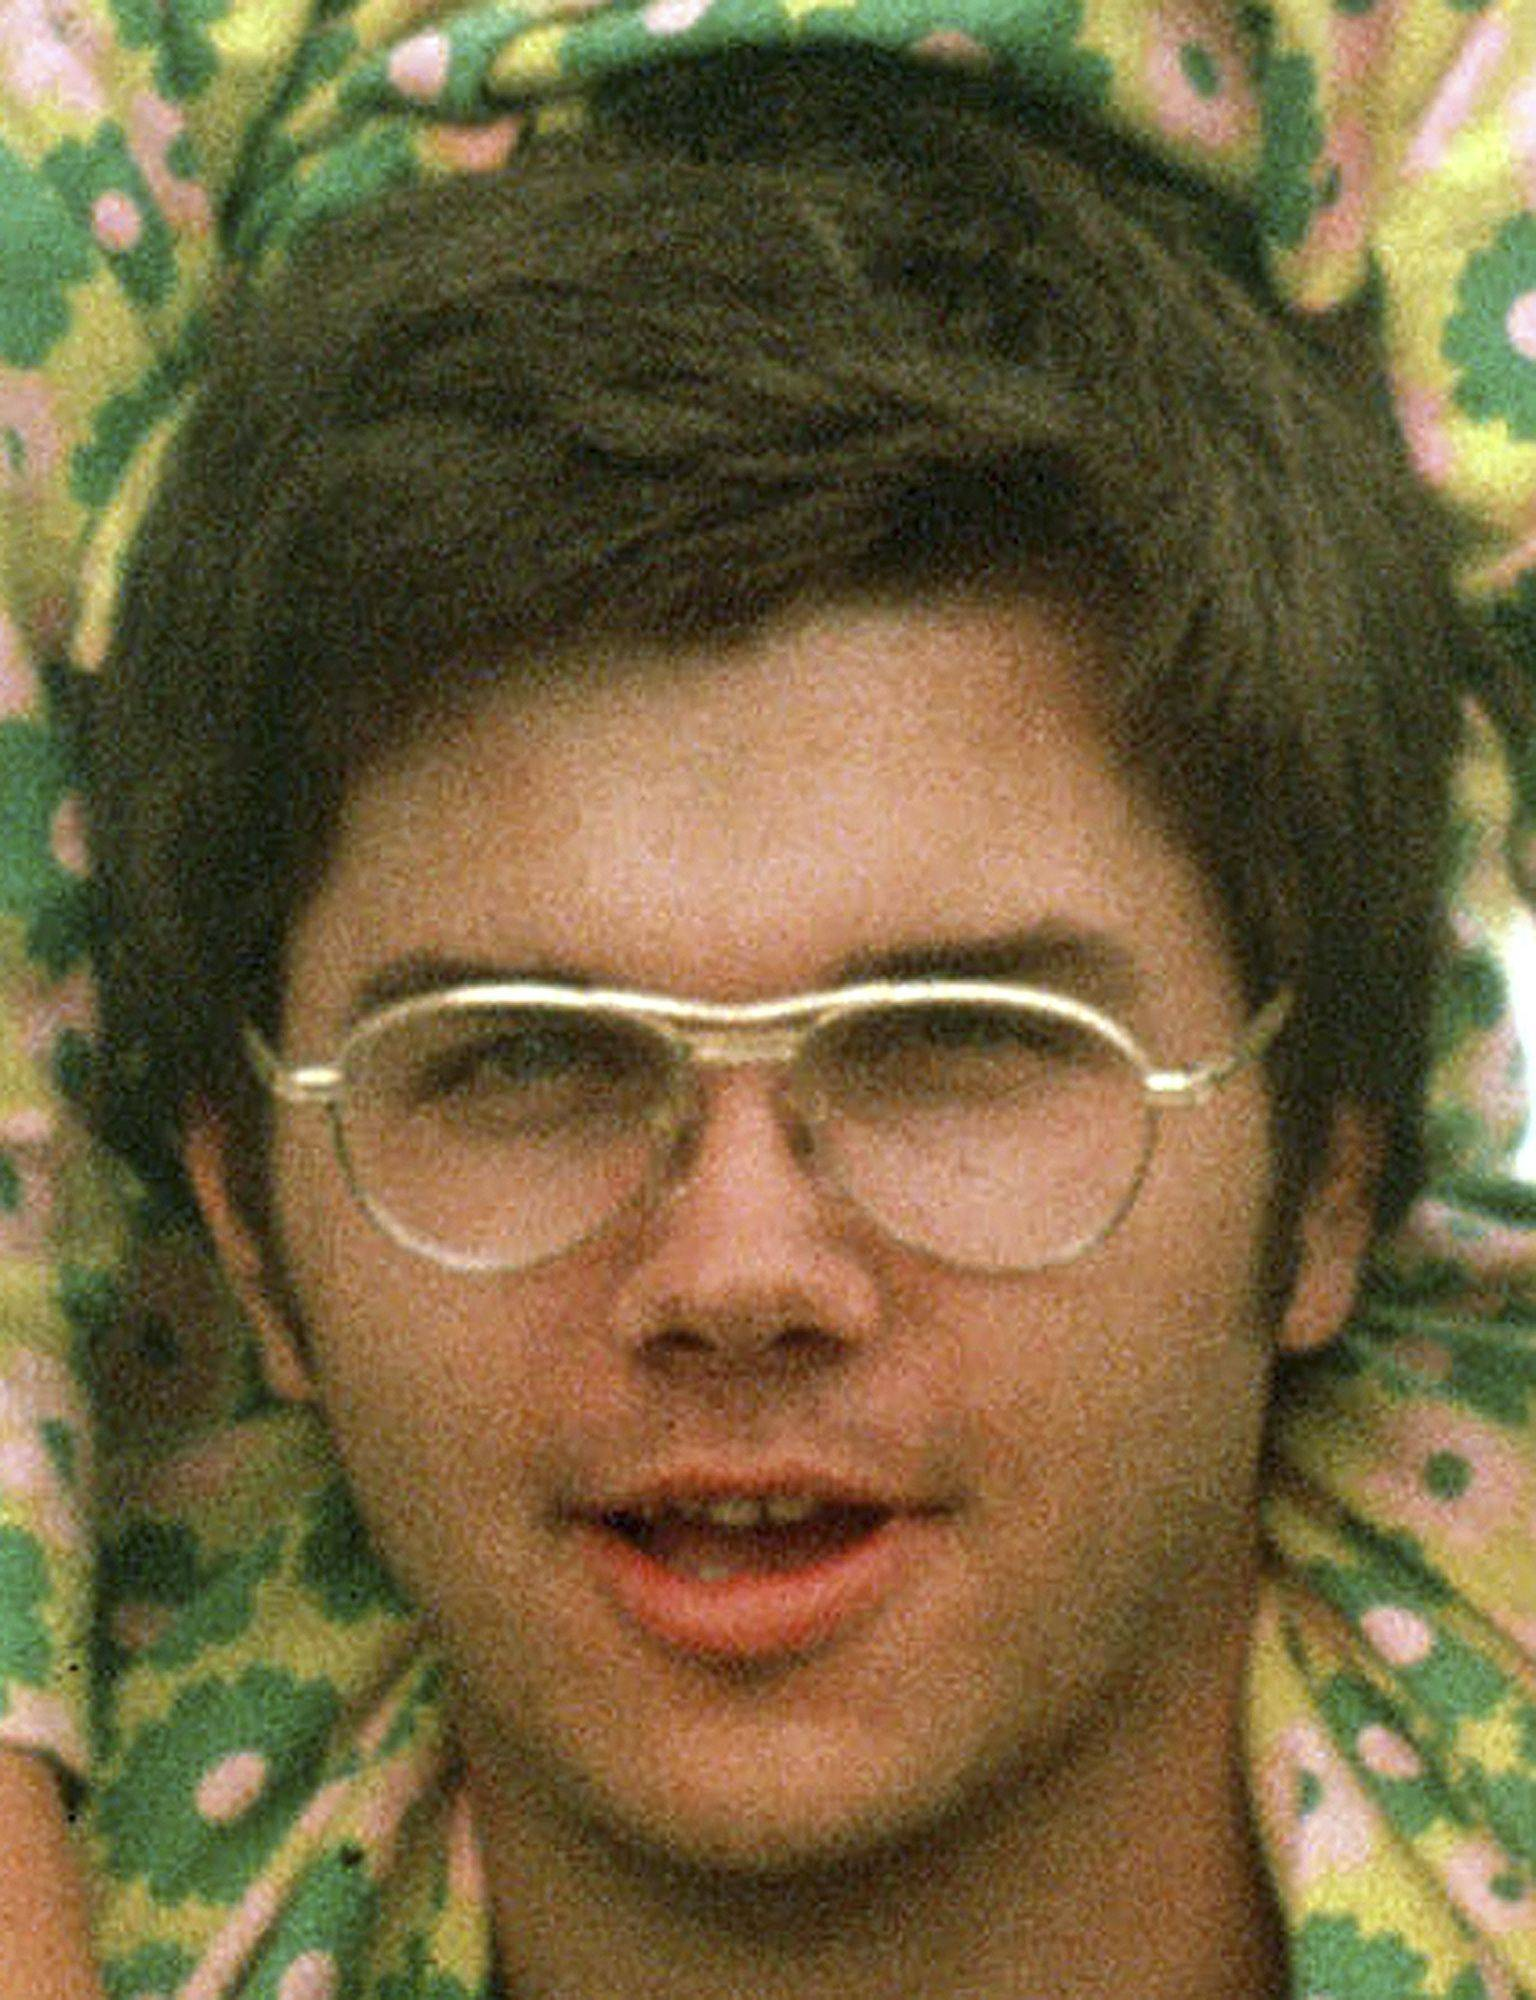 In this 1975 file photo, Mark David Chapman is seen at Fort Chaffee near Fort Smith, Ark. Chapman shot and killed John Lennon on Dec. 8, 1980.